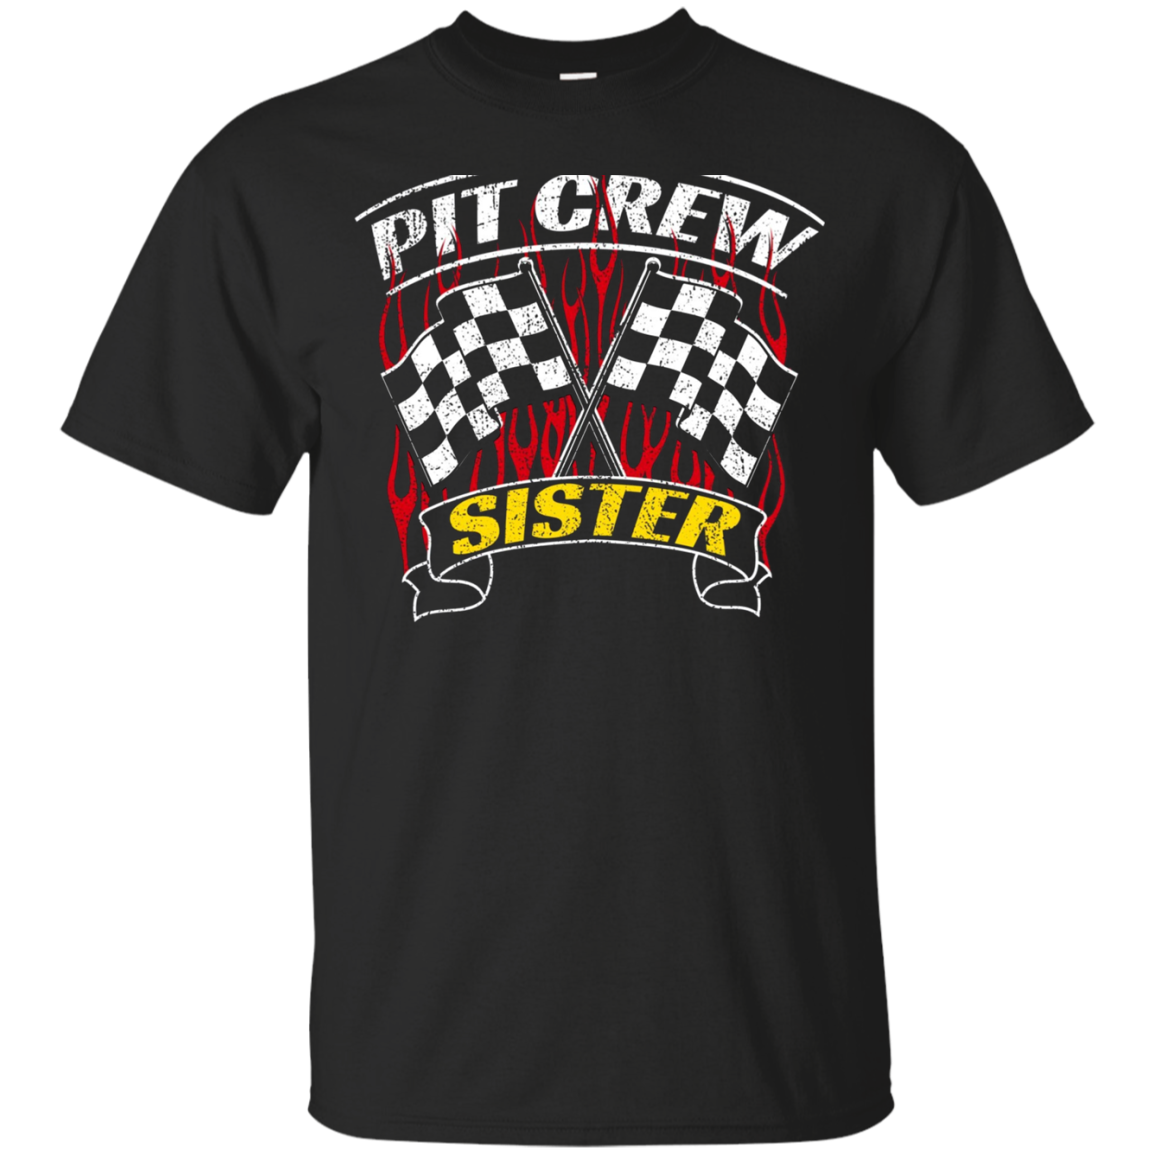 Pit Crew Sister Back Print Long Sleeve Shirt Formula Racing